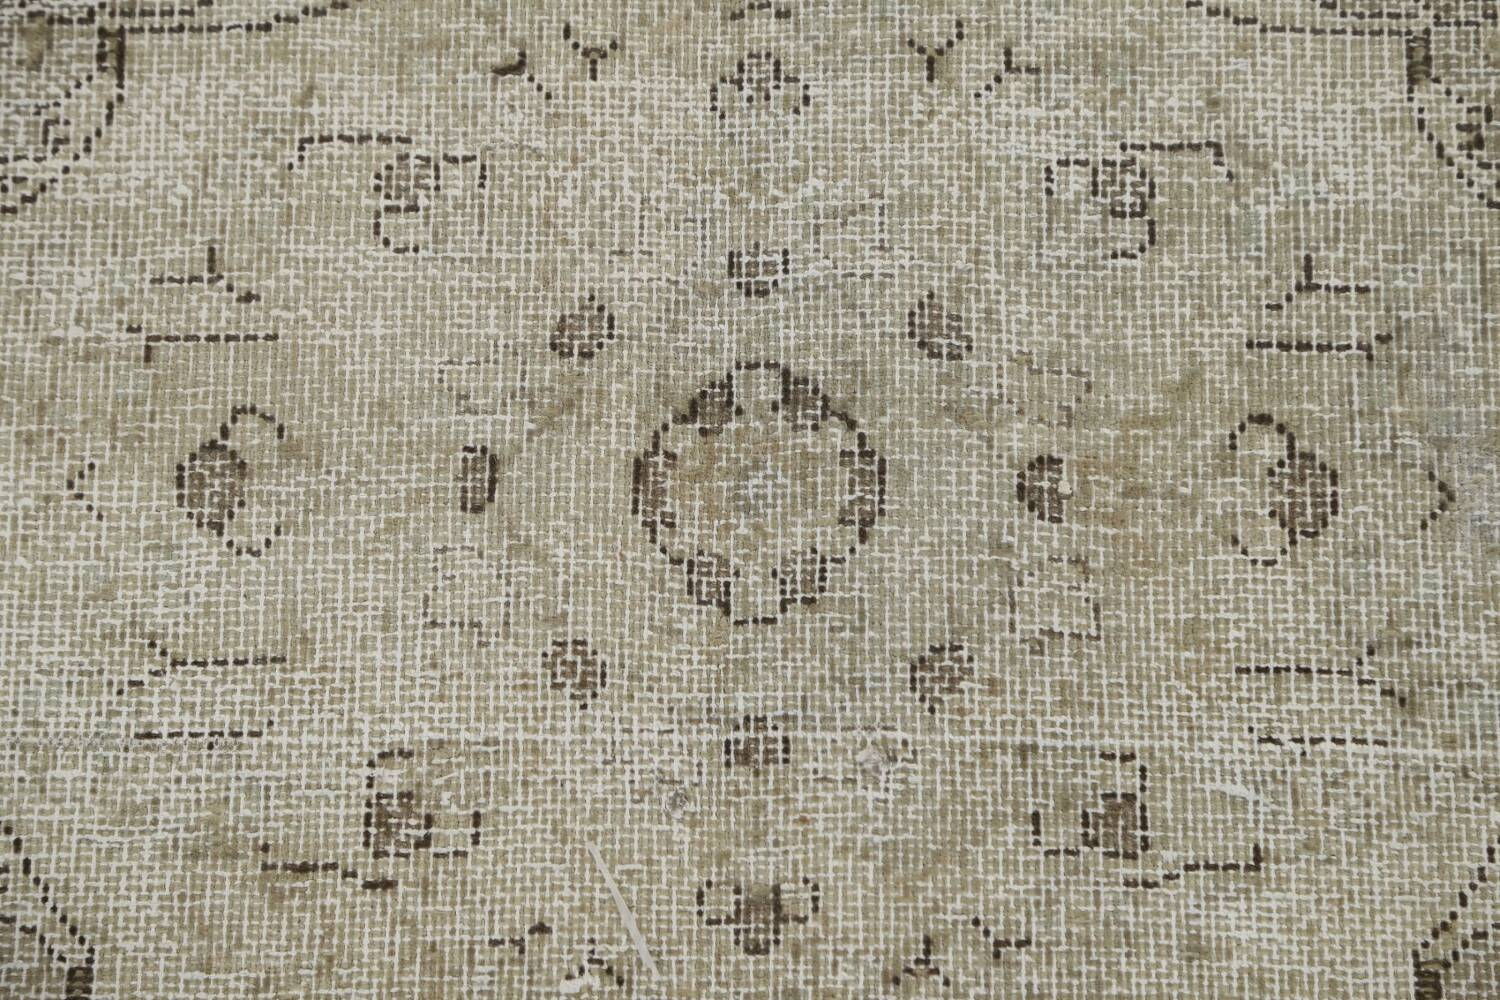 Muted Distressed Floral Tabriz Persian Area Rug 10x13 image 13